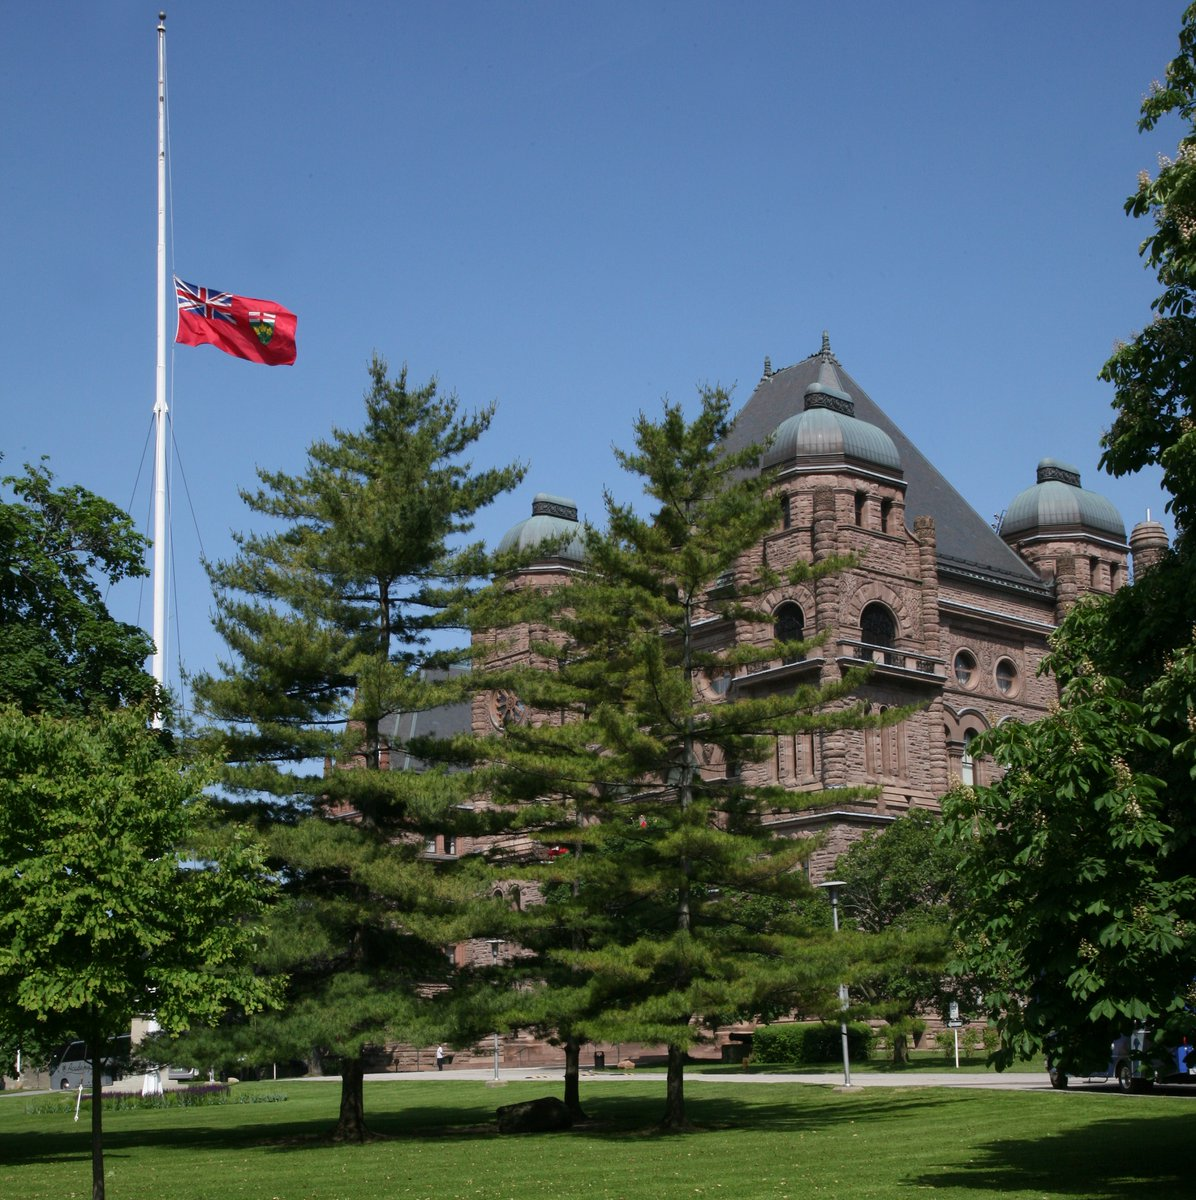 The flags have been lowered to Half-mast from sunrise to sunset today at the Legislative Assembly of Ontario in recognition of Police and Peace Officers National Memorial Day